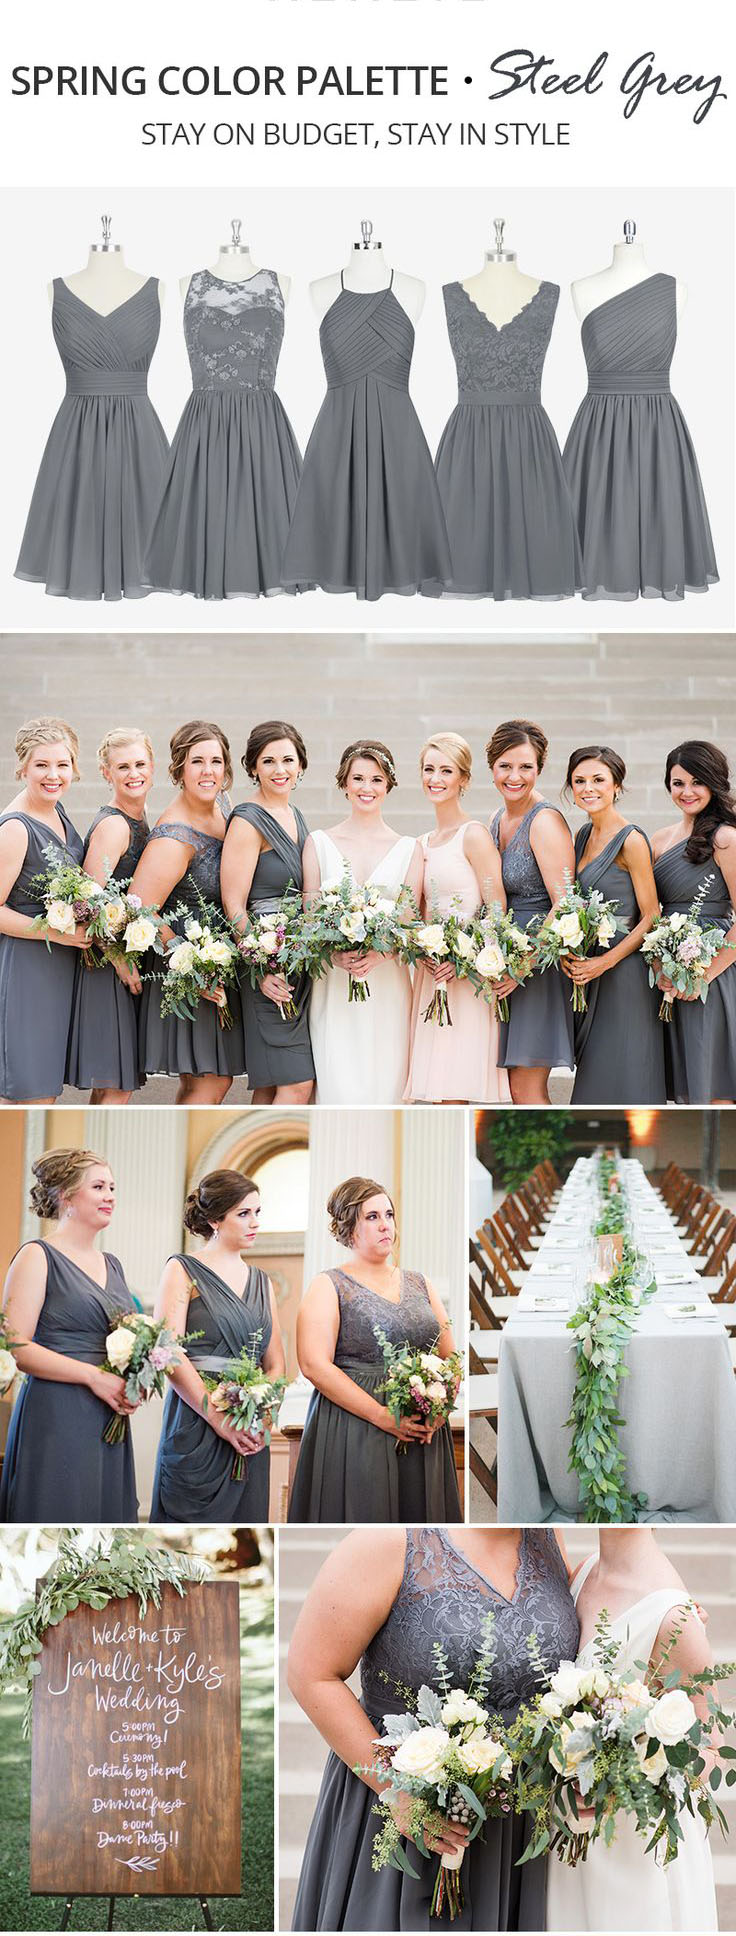 Trending Spring Color Palette for Your Bridesmaid Dresses-Steel-grey